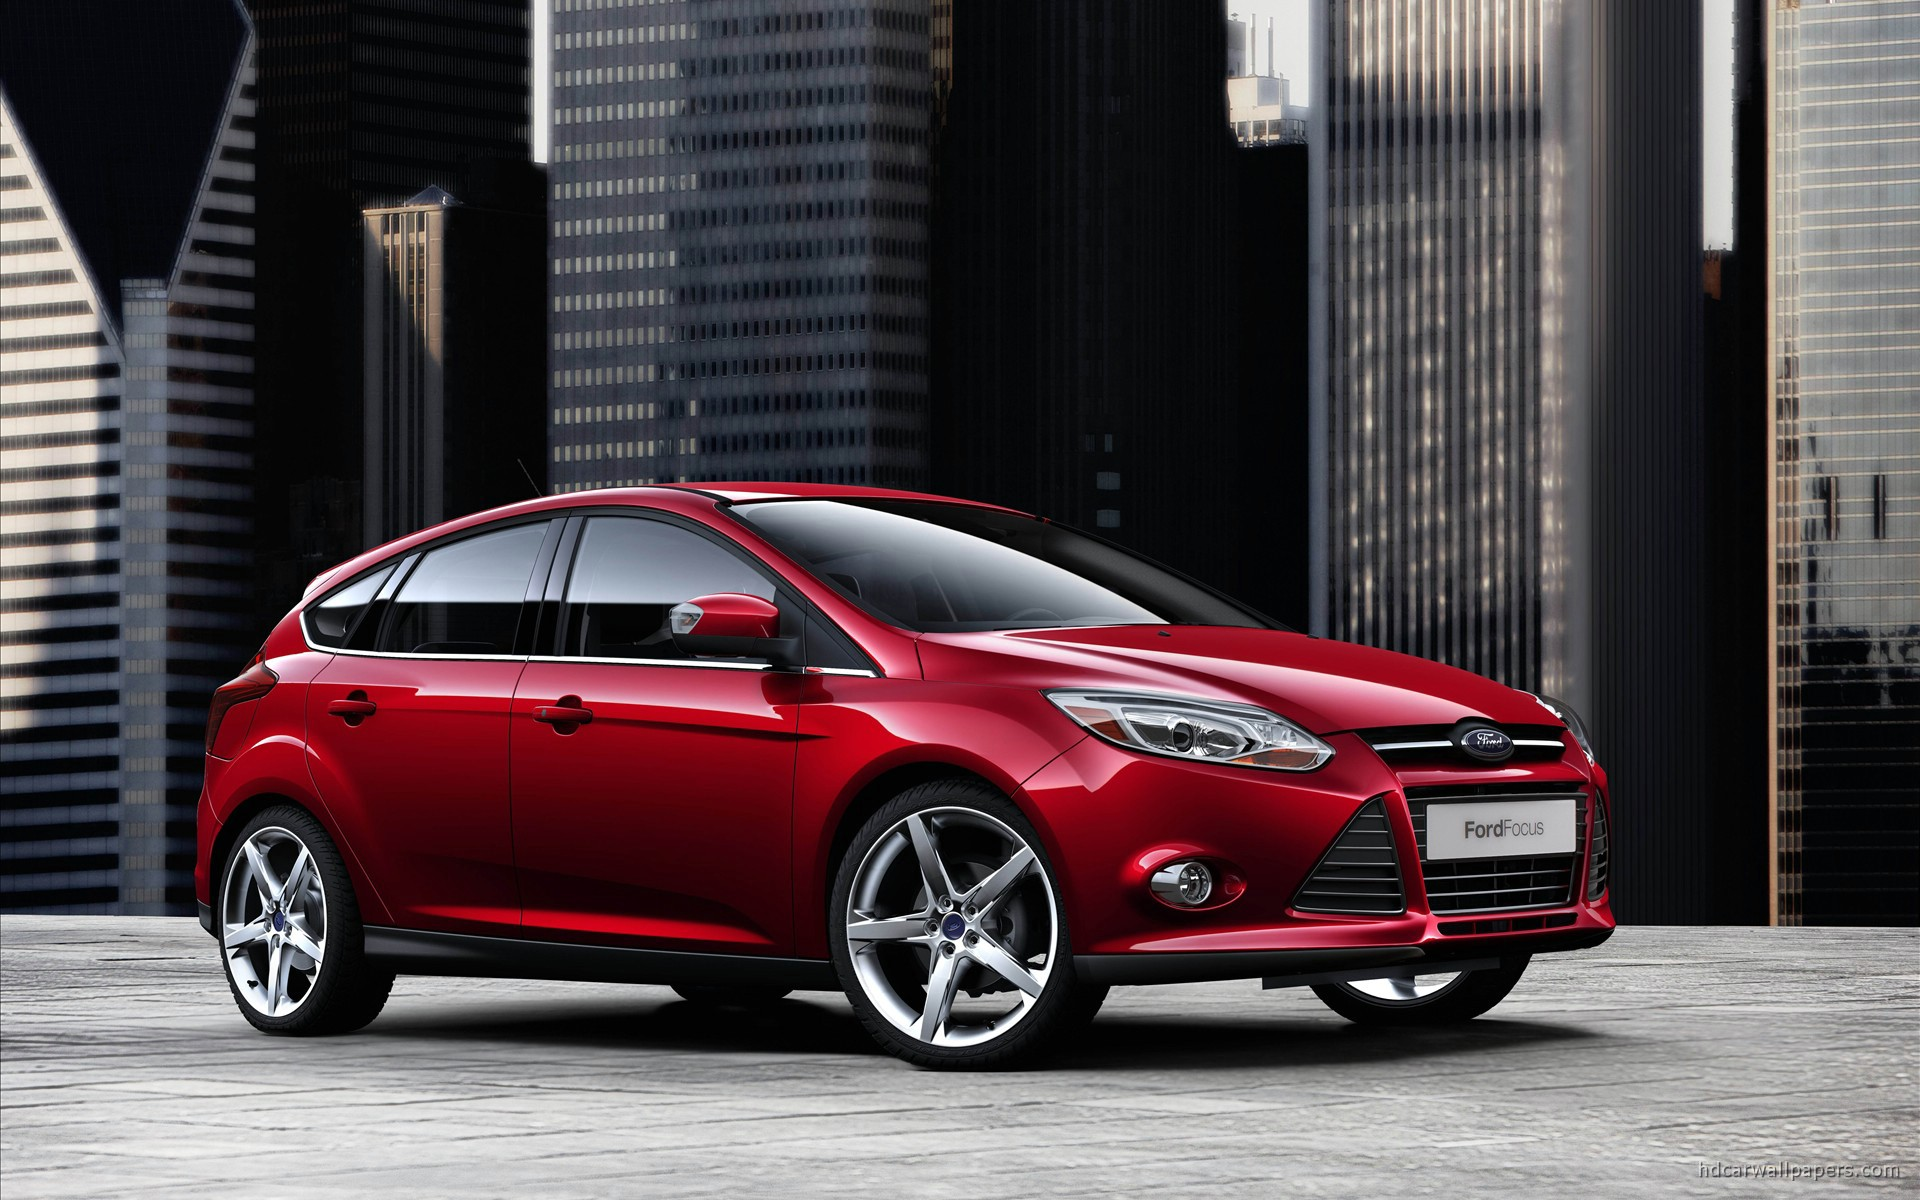 2010 next generation ford focus wallpaper | hd car wallpapers